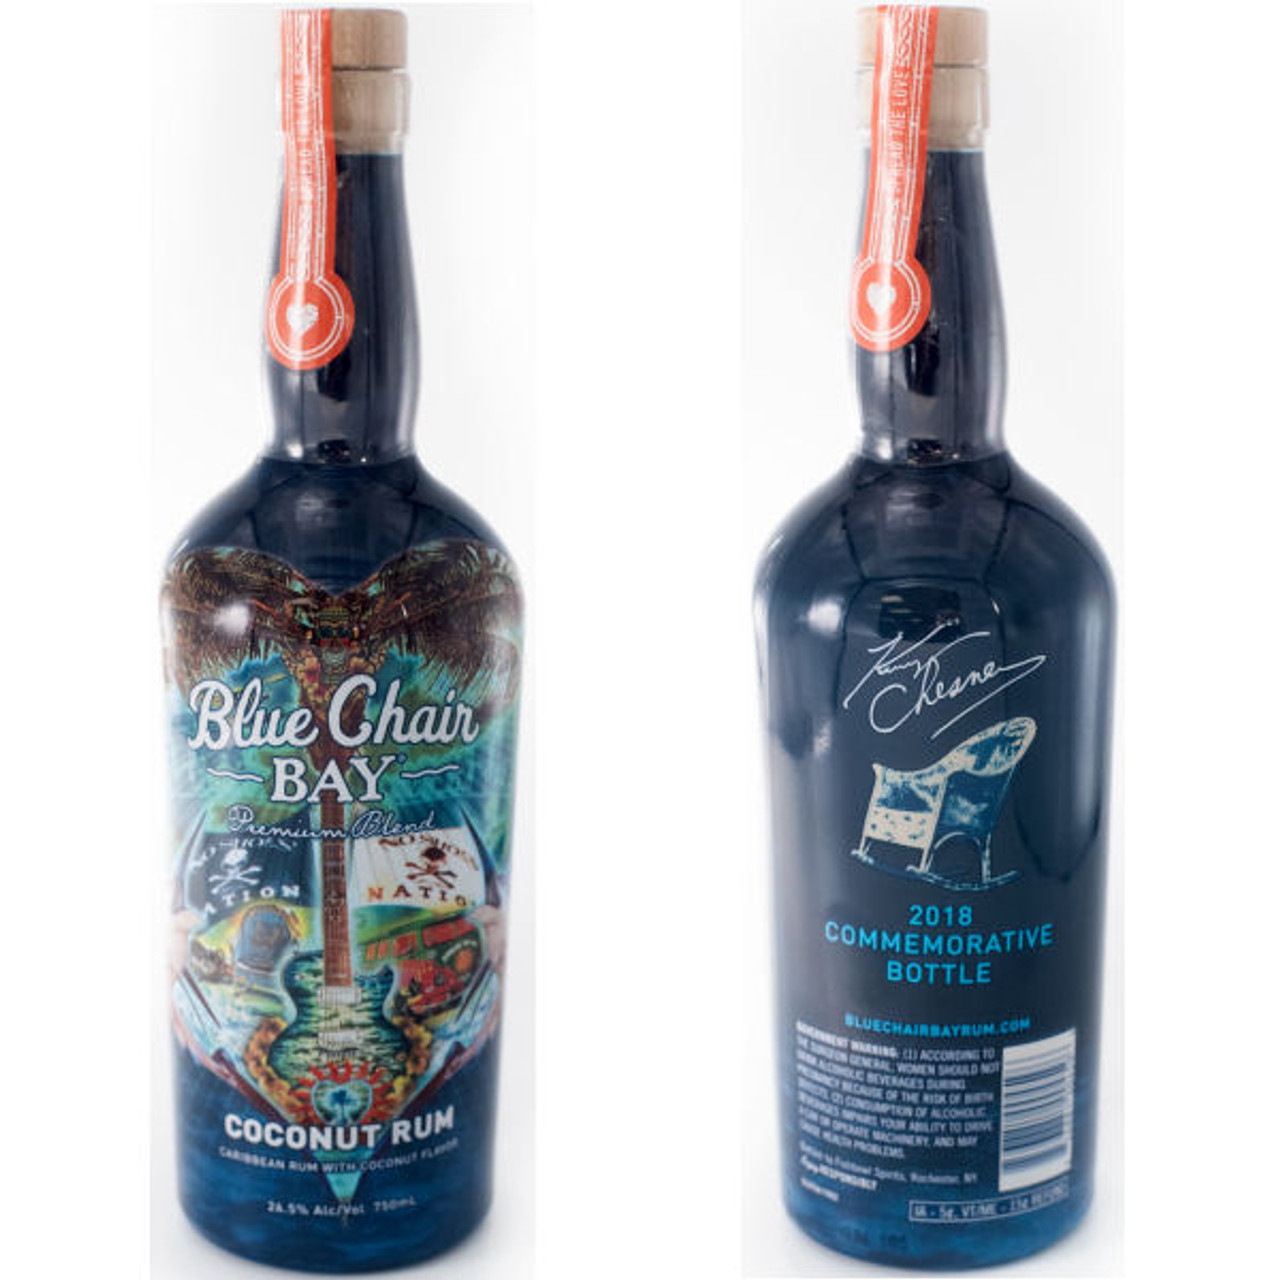 blue chair rum country dining chairs kenny chesney bay premium blend coconut commemorative bottle 2018 750ml